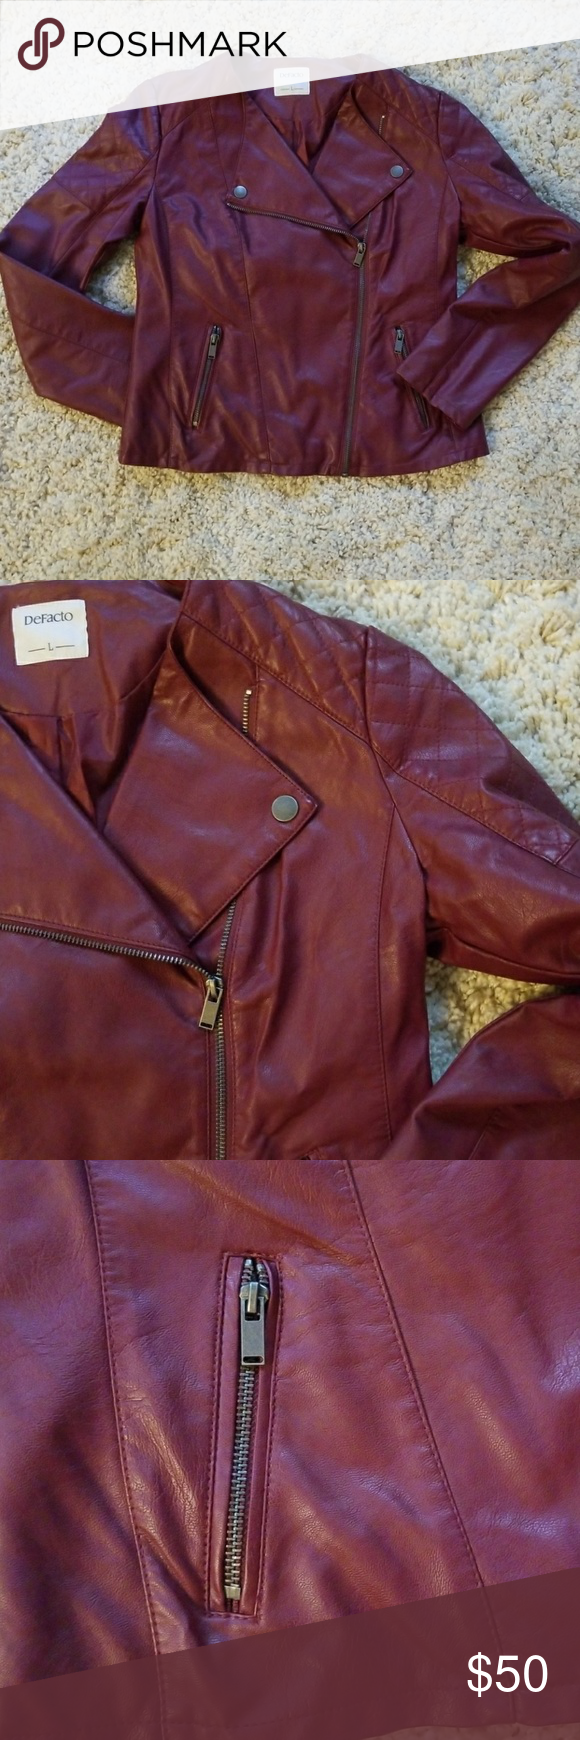 Leather jacket SIZE L cherry Leather jacket SIZE L made in